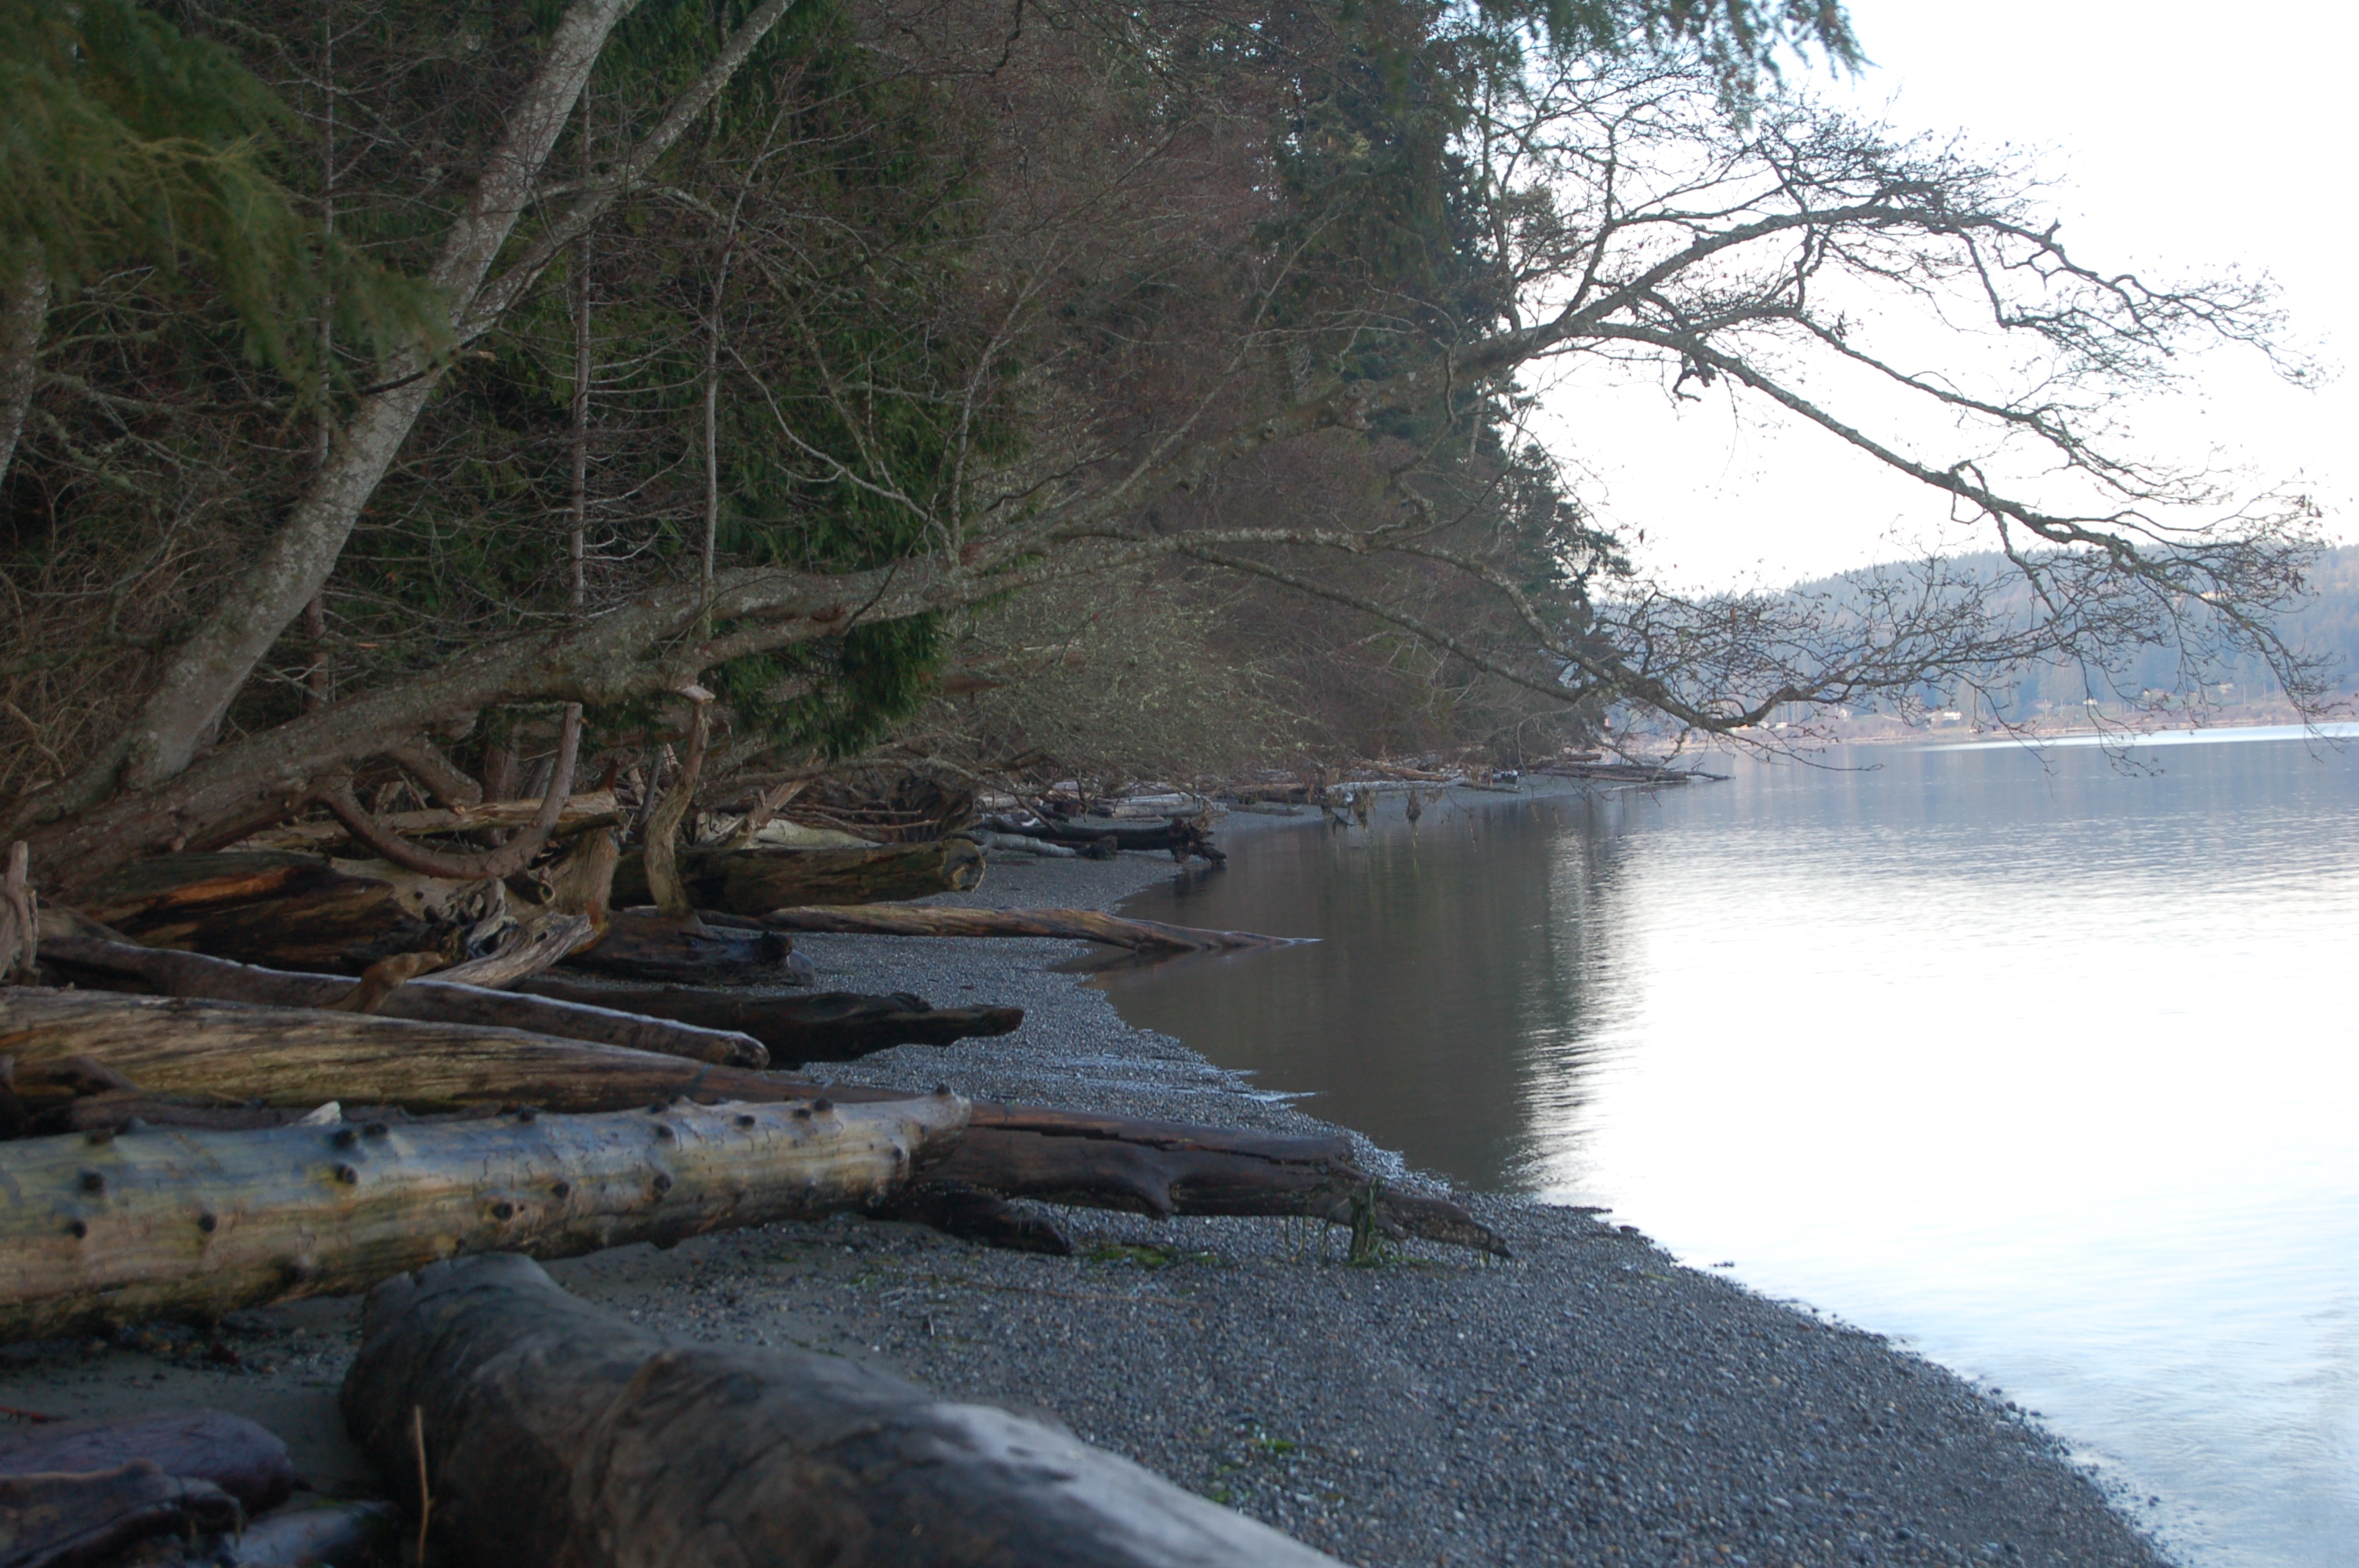 Whidbey Island State Park